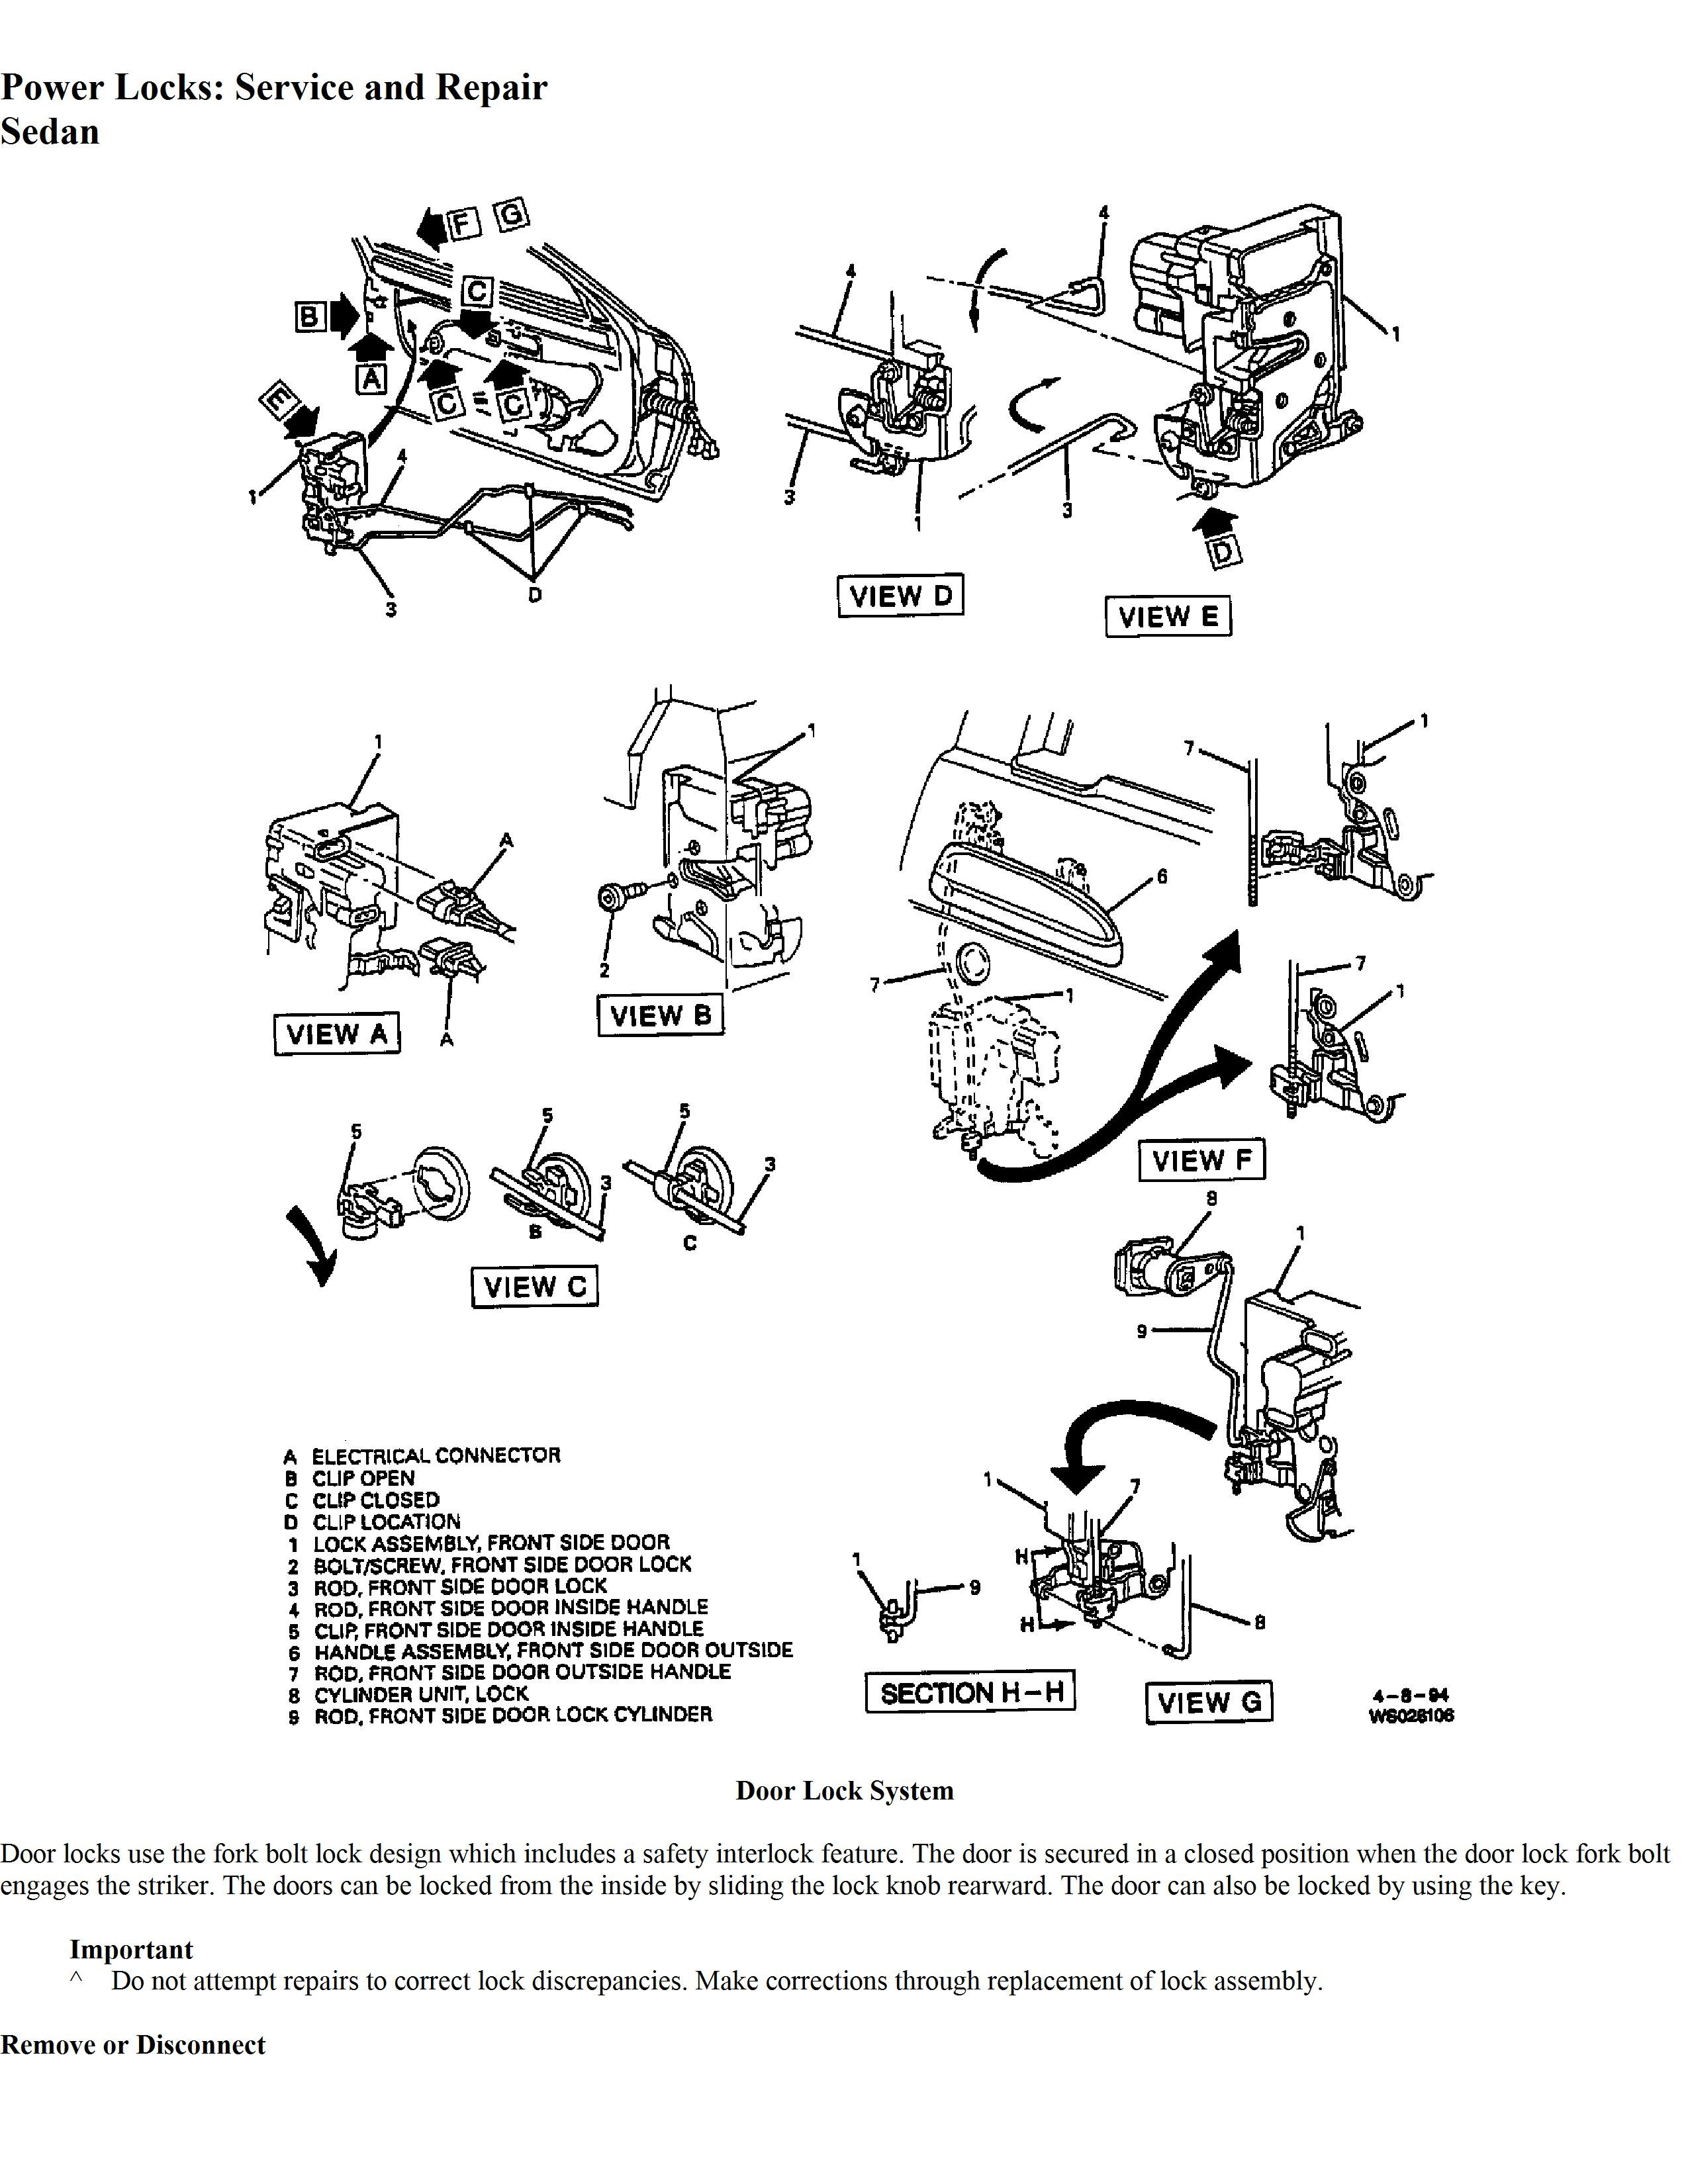 96 Lumina Wiring Diagrams Library Power Door Lock Diagram Get Free Image About Chevy Download For A Under Hood